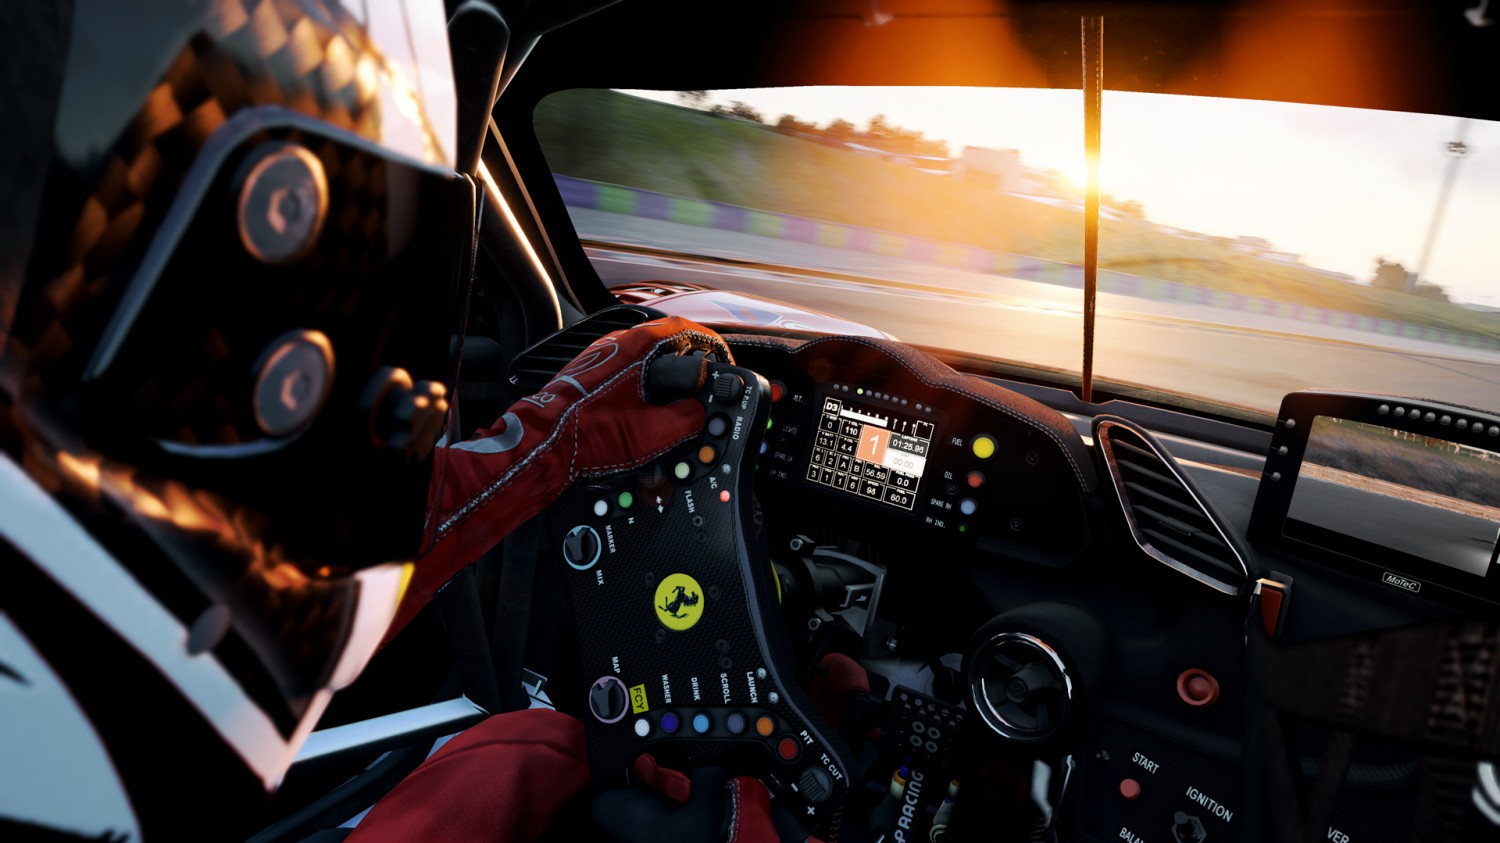 The latest Assetto Corsa Competizione update brings in the prancing horse